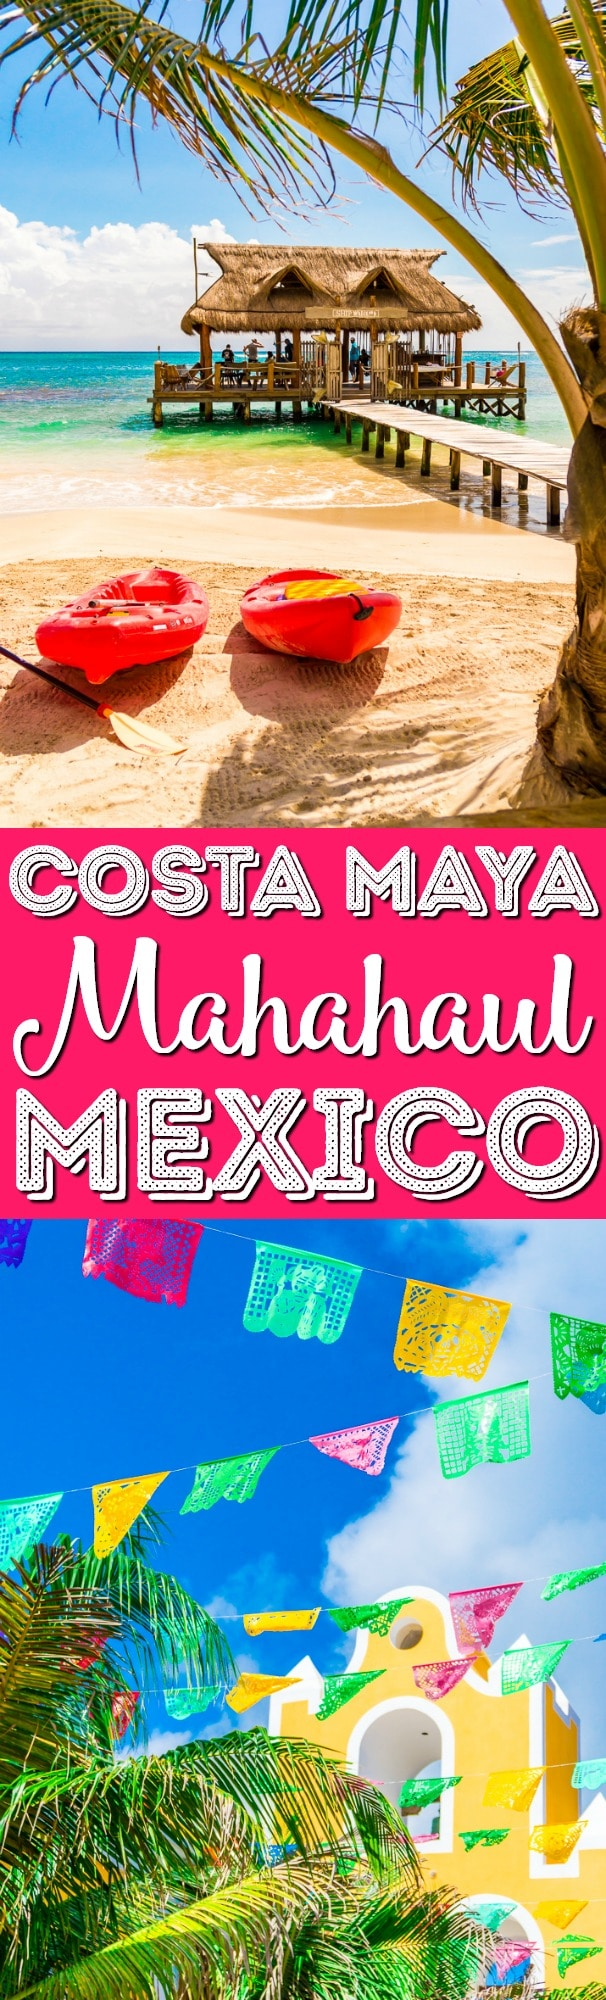 On a cruise or visiting the Yucatan Peninsula and ready for a little adventure or relaxing? Here are some Things To Do in Costa Maya and Mahahaul Mexico! via @sugarandsoulco